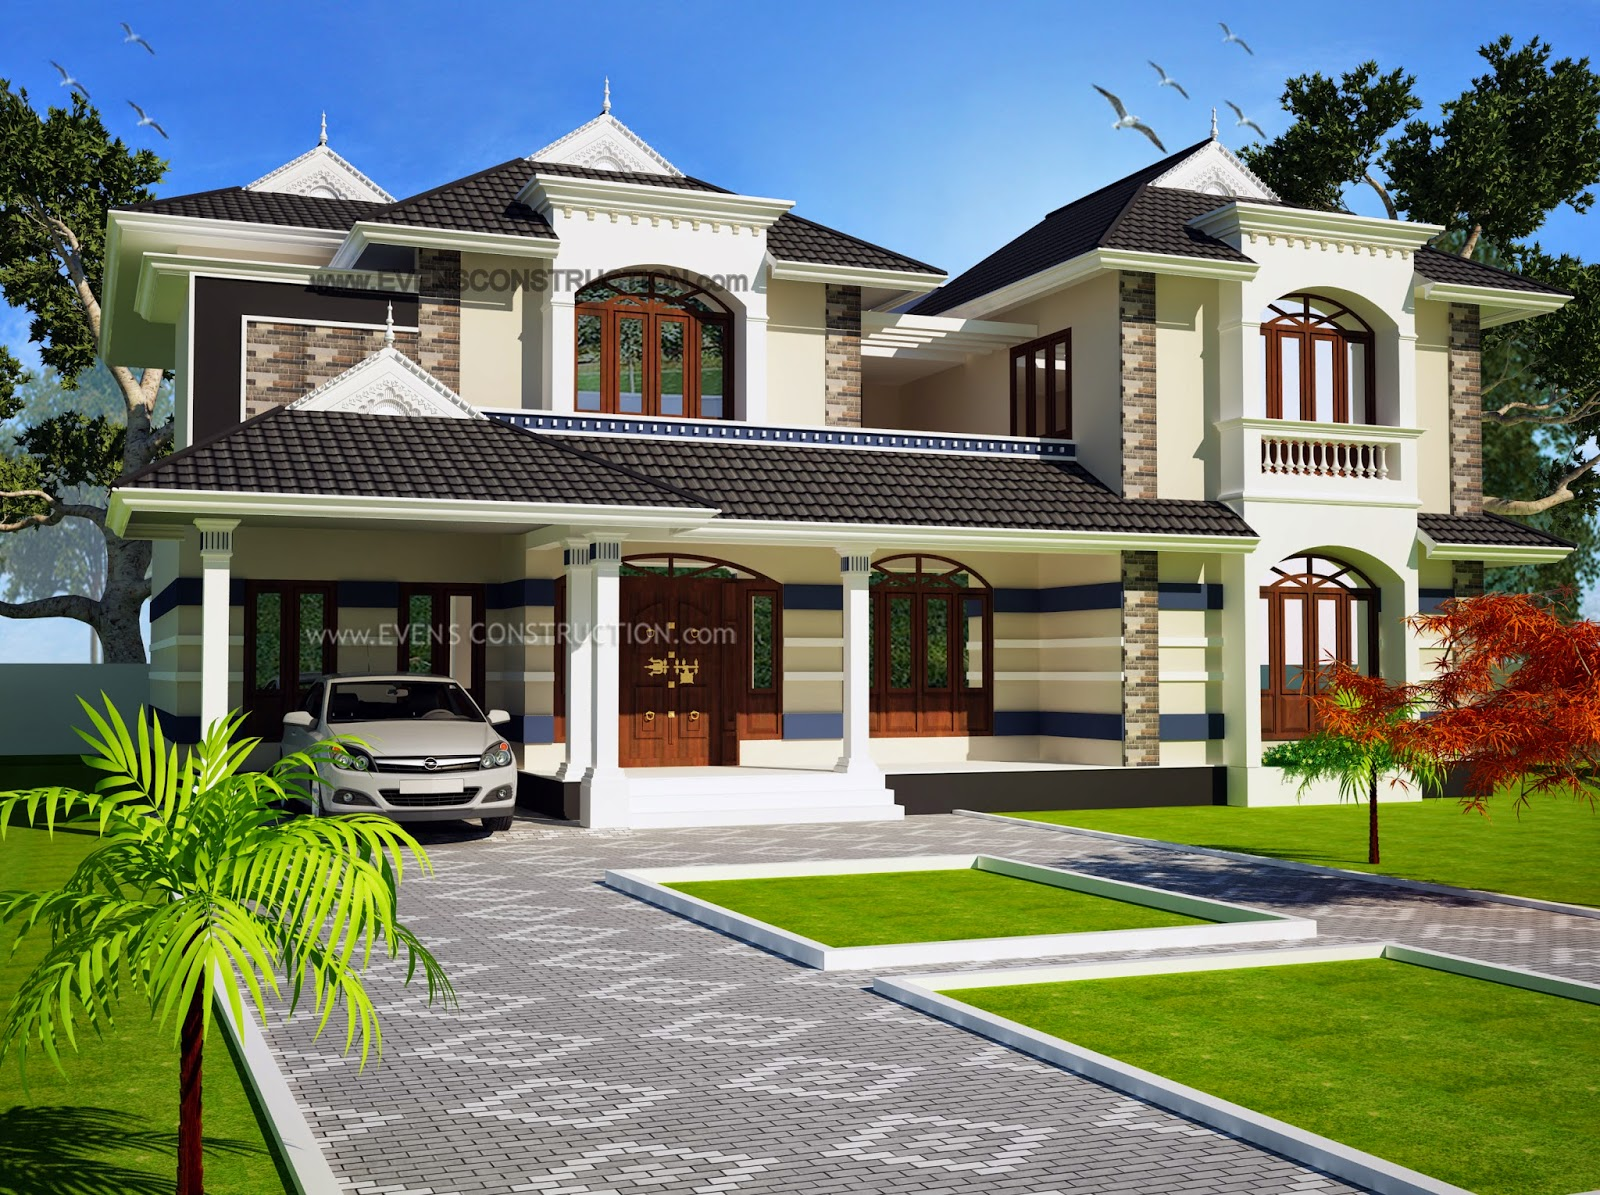 Evens Construction Pvt Ltd 3222 Square Feet 4 Bedroom House